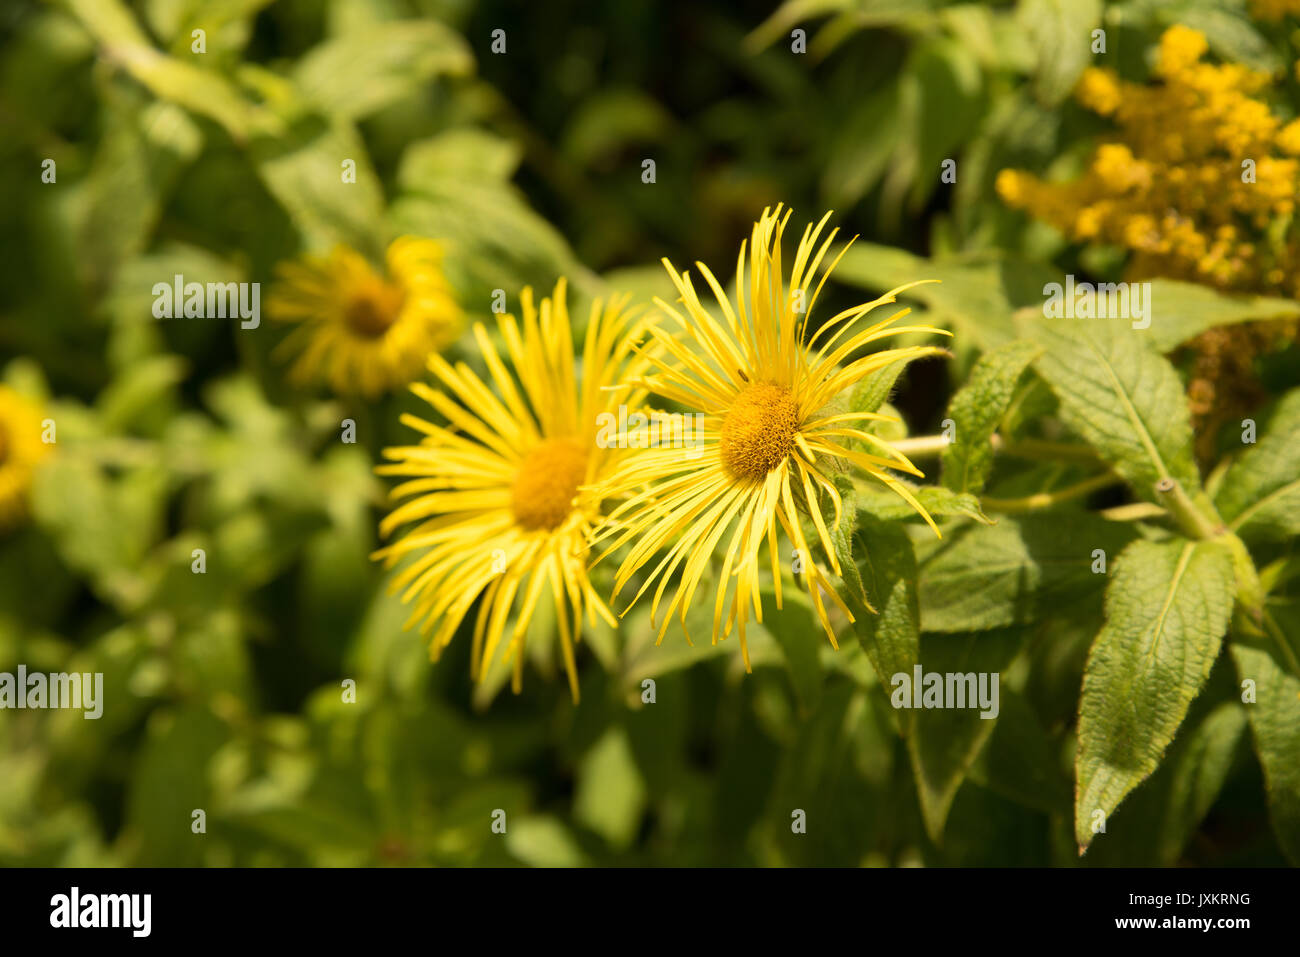 Yellow Aster Flowers In An English Country Garden Stock Photo